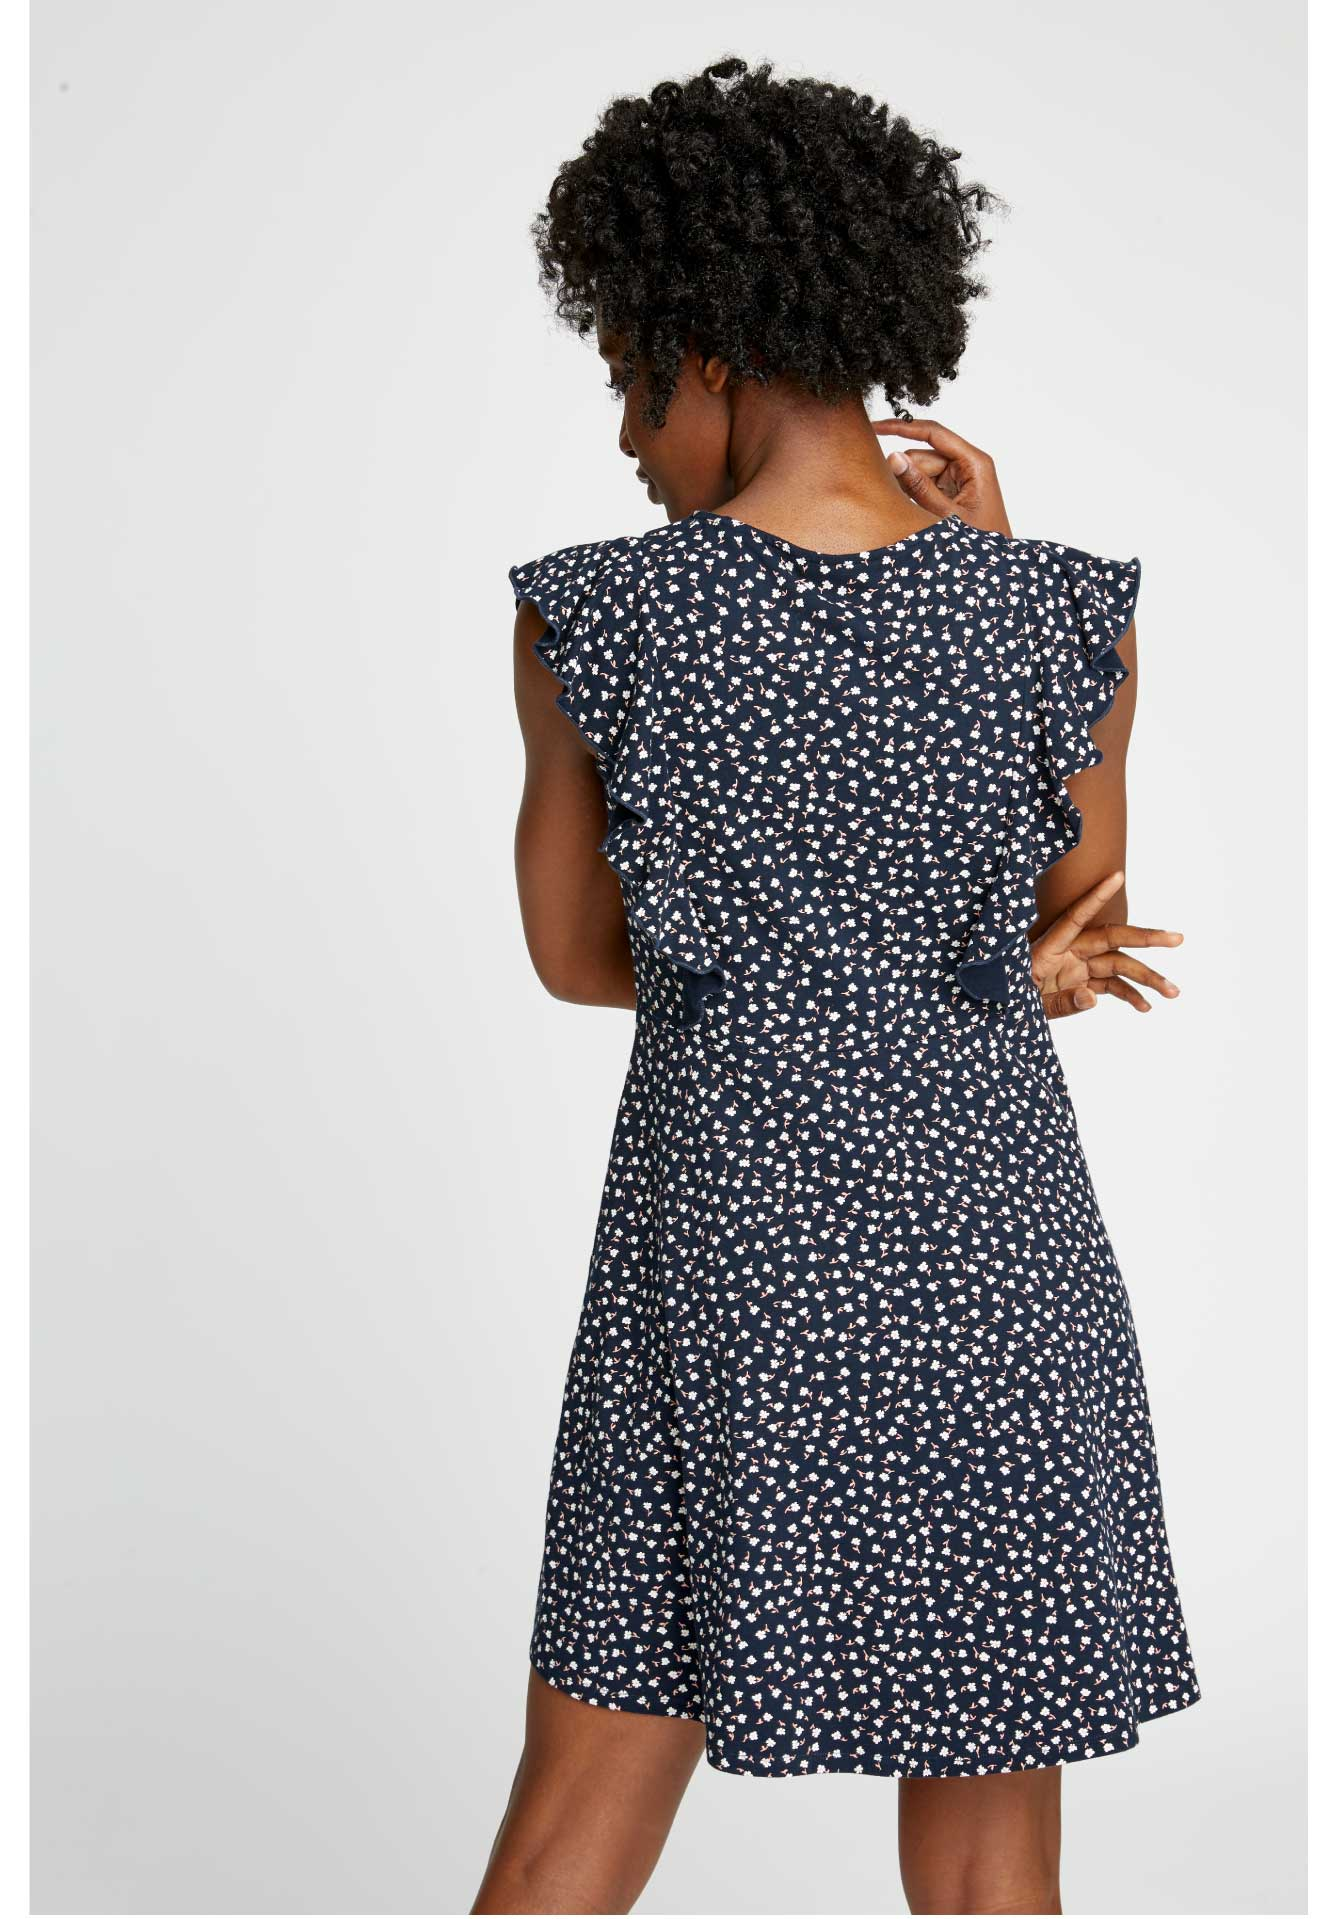 Lulu Floral Dress - Navy-Dress-Sancho's Dress